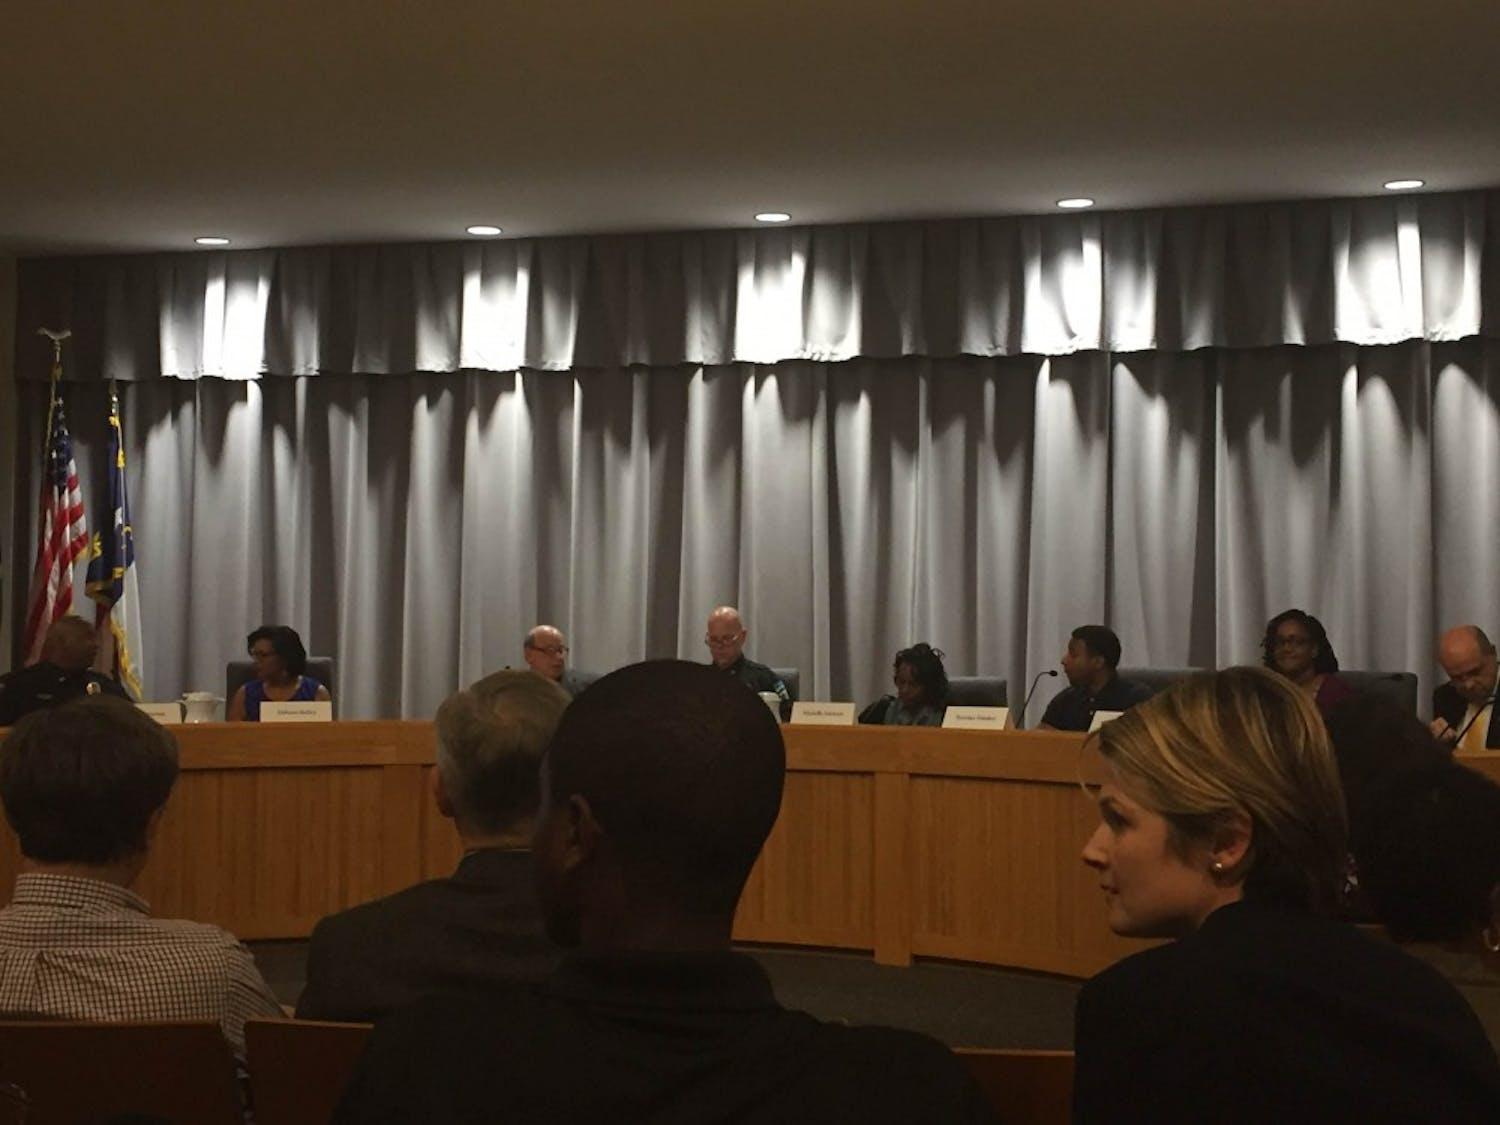 Law enforcement officials and community members hold public forum on police, race, and community in chapel hill town hall on Monday.